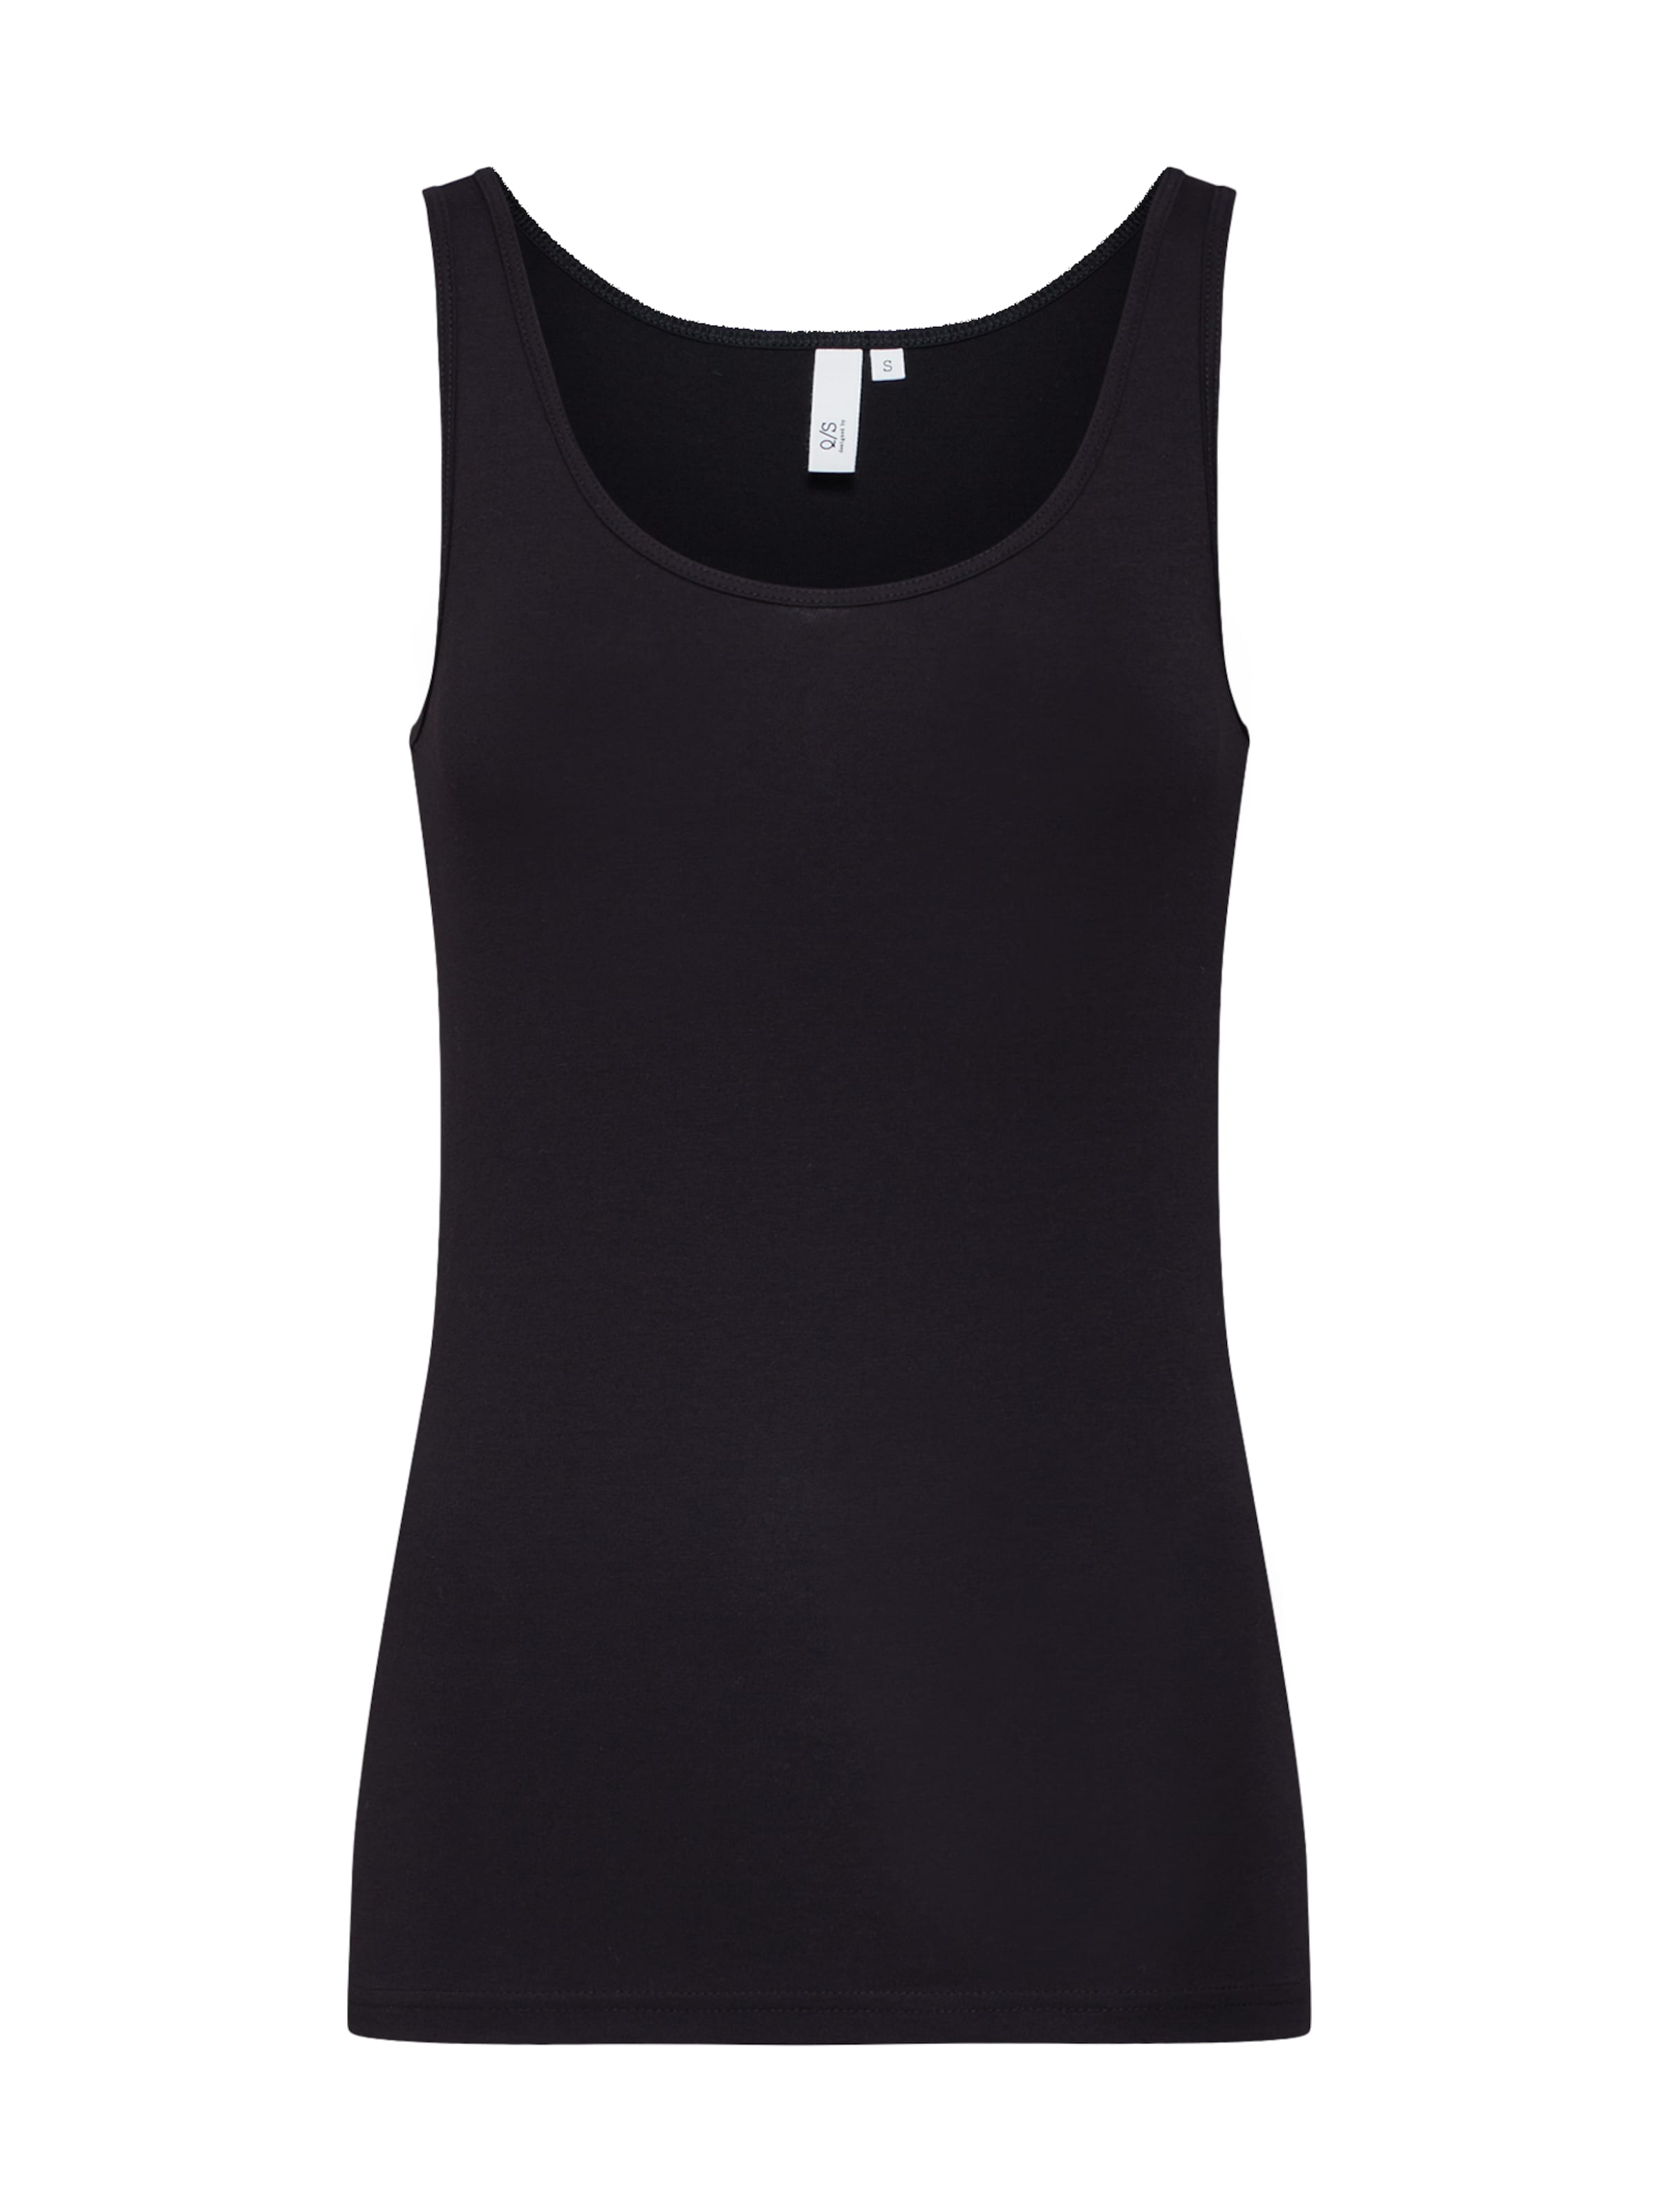 Tanktops In By Q s Schwarz Designed CQtrshd